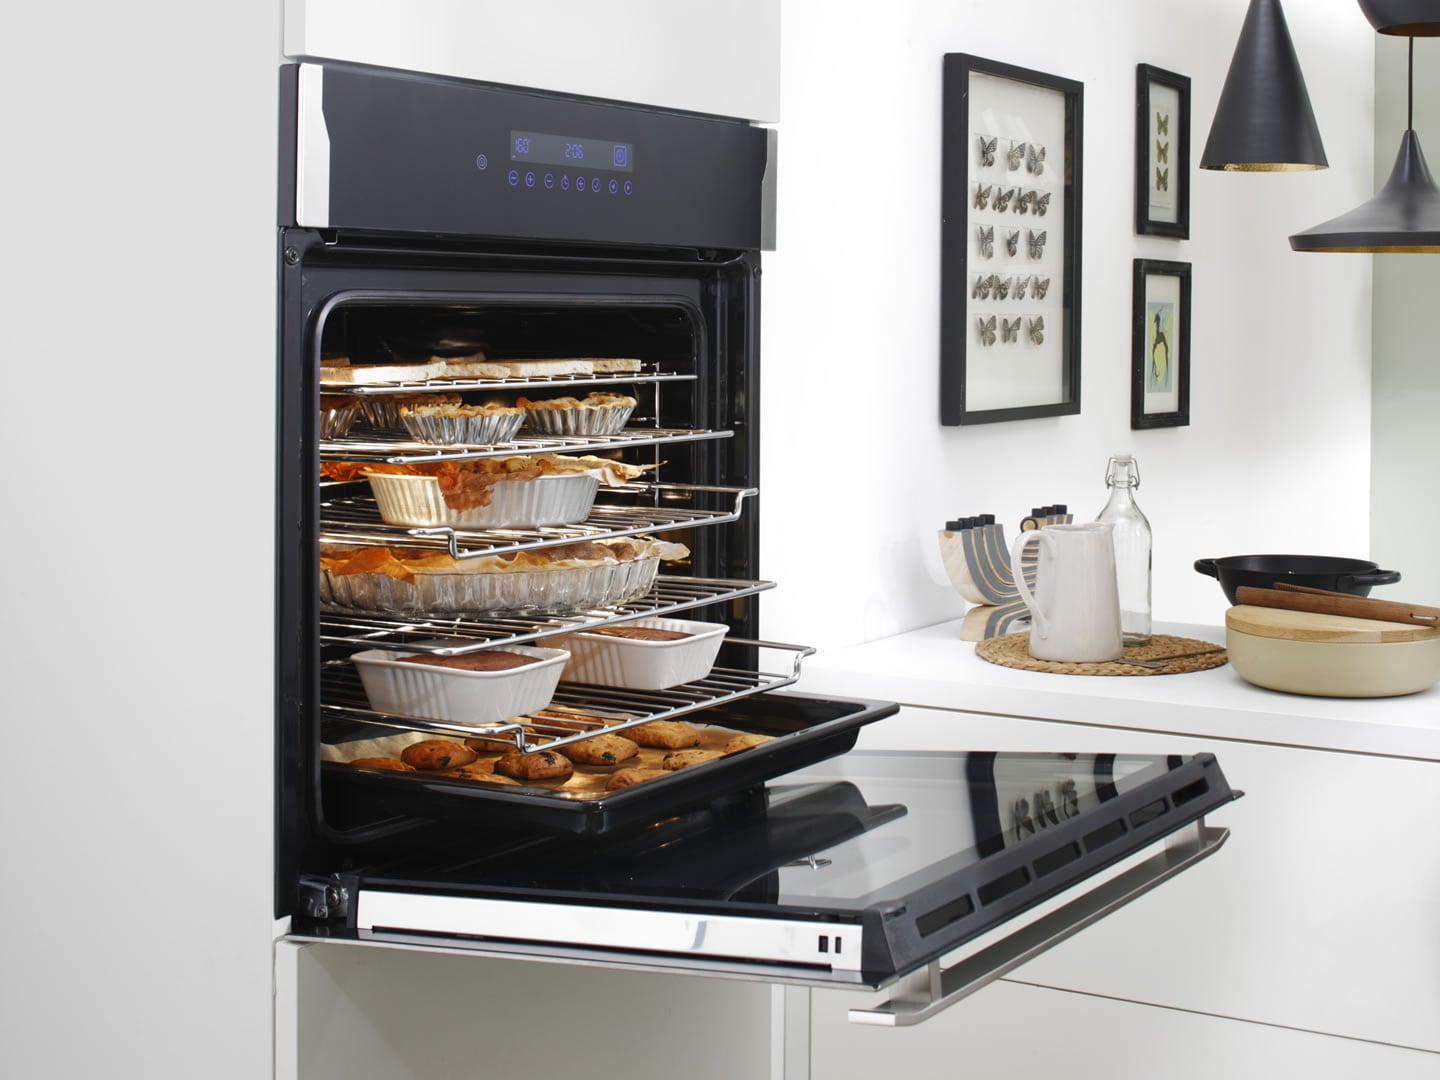 60cm 85L Built In Oven DEP7410P Lifestyle Image